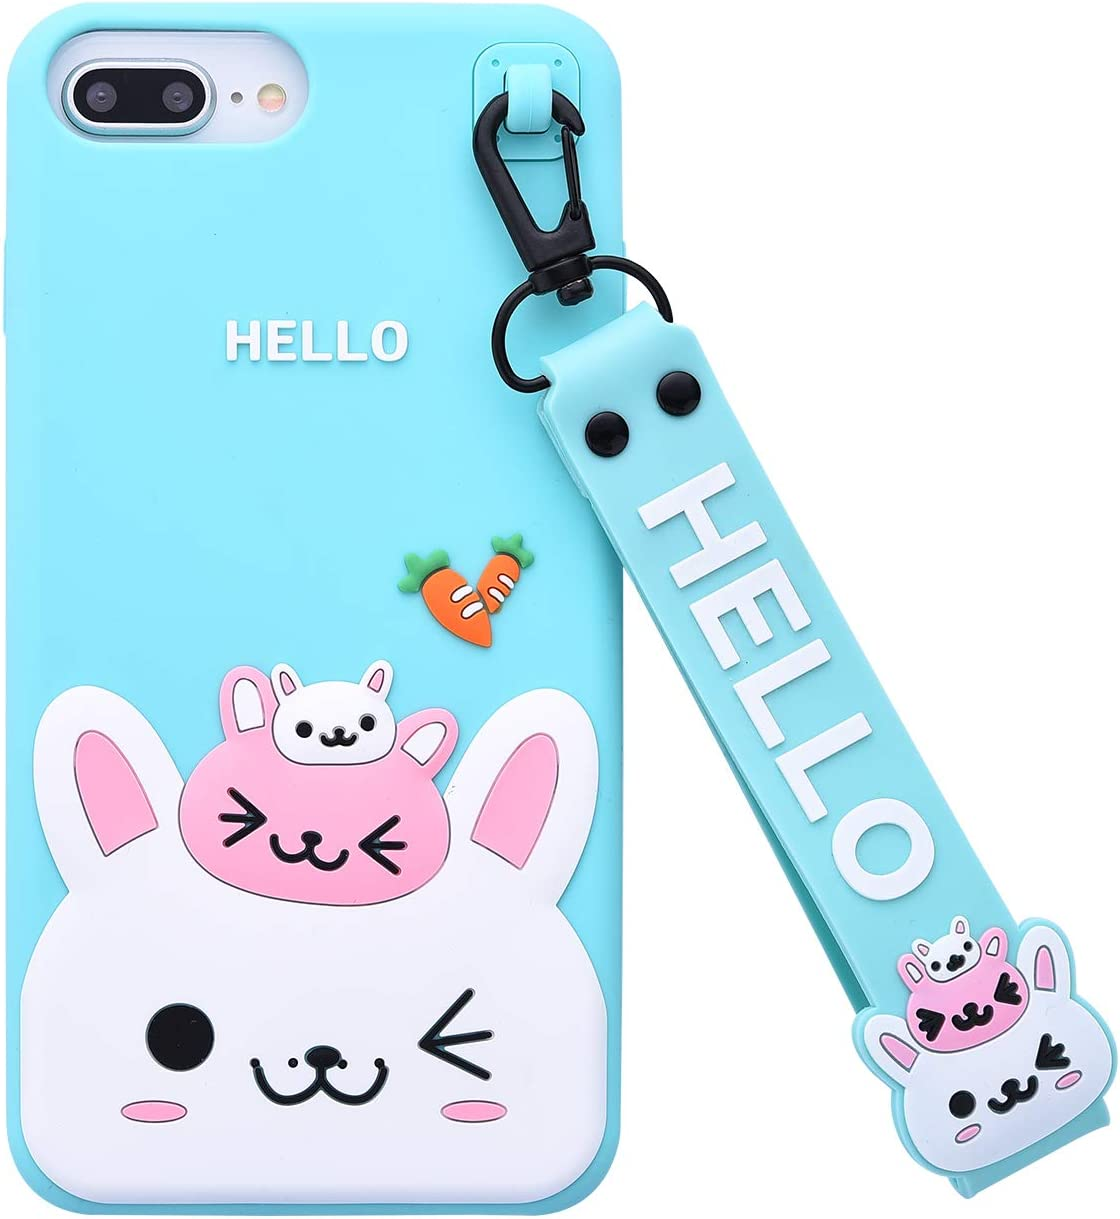 Case for iPhone 7Plus/iPhone 8Plus Case,iFunny Cute 3D Cartoon Kawaii Radish Rabbit Shockproof Soft Silicone Rubber Case with Wrist Strap for iPhone 6 6S Plus 7 8Plus (5.5inch) (Radish Rabbit Green)